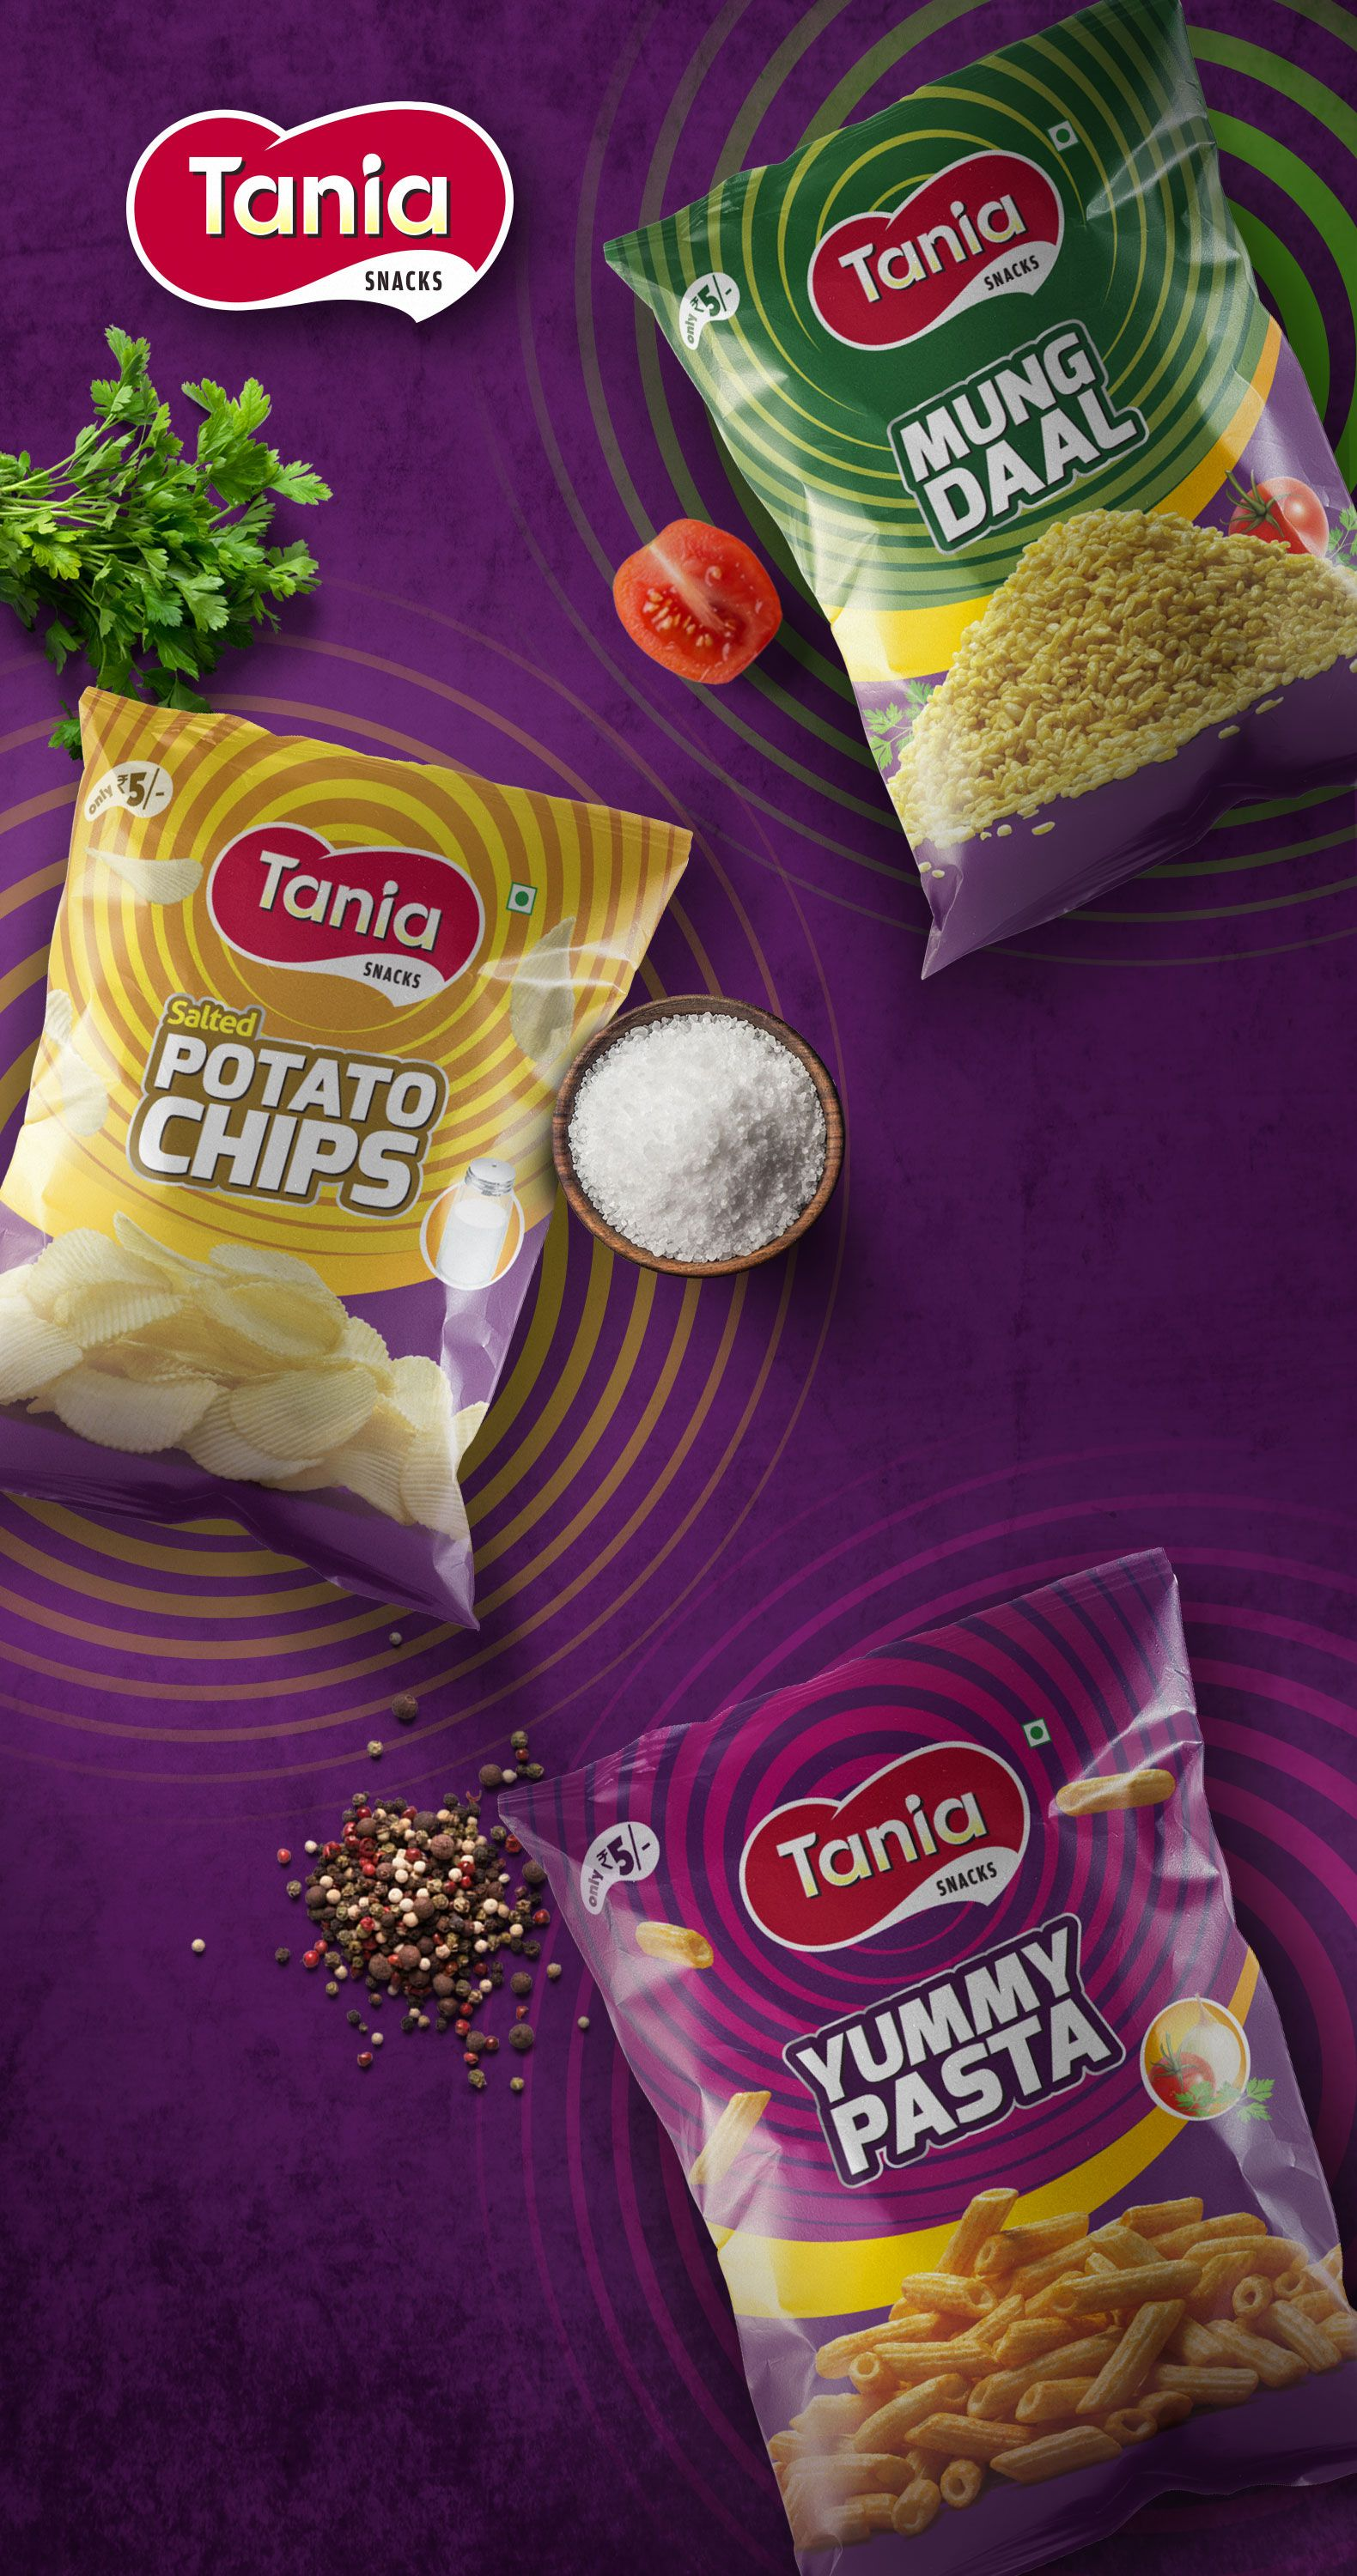 Tania Chips Aspired To Stand Out On The Shelves When Kept